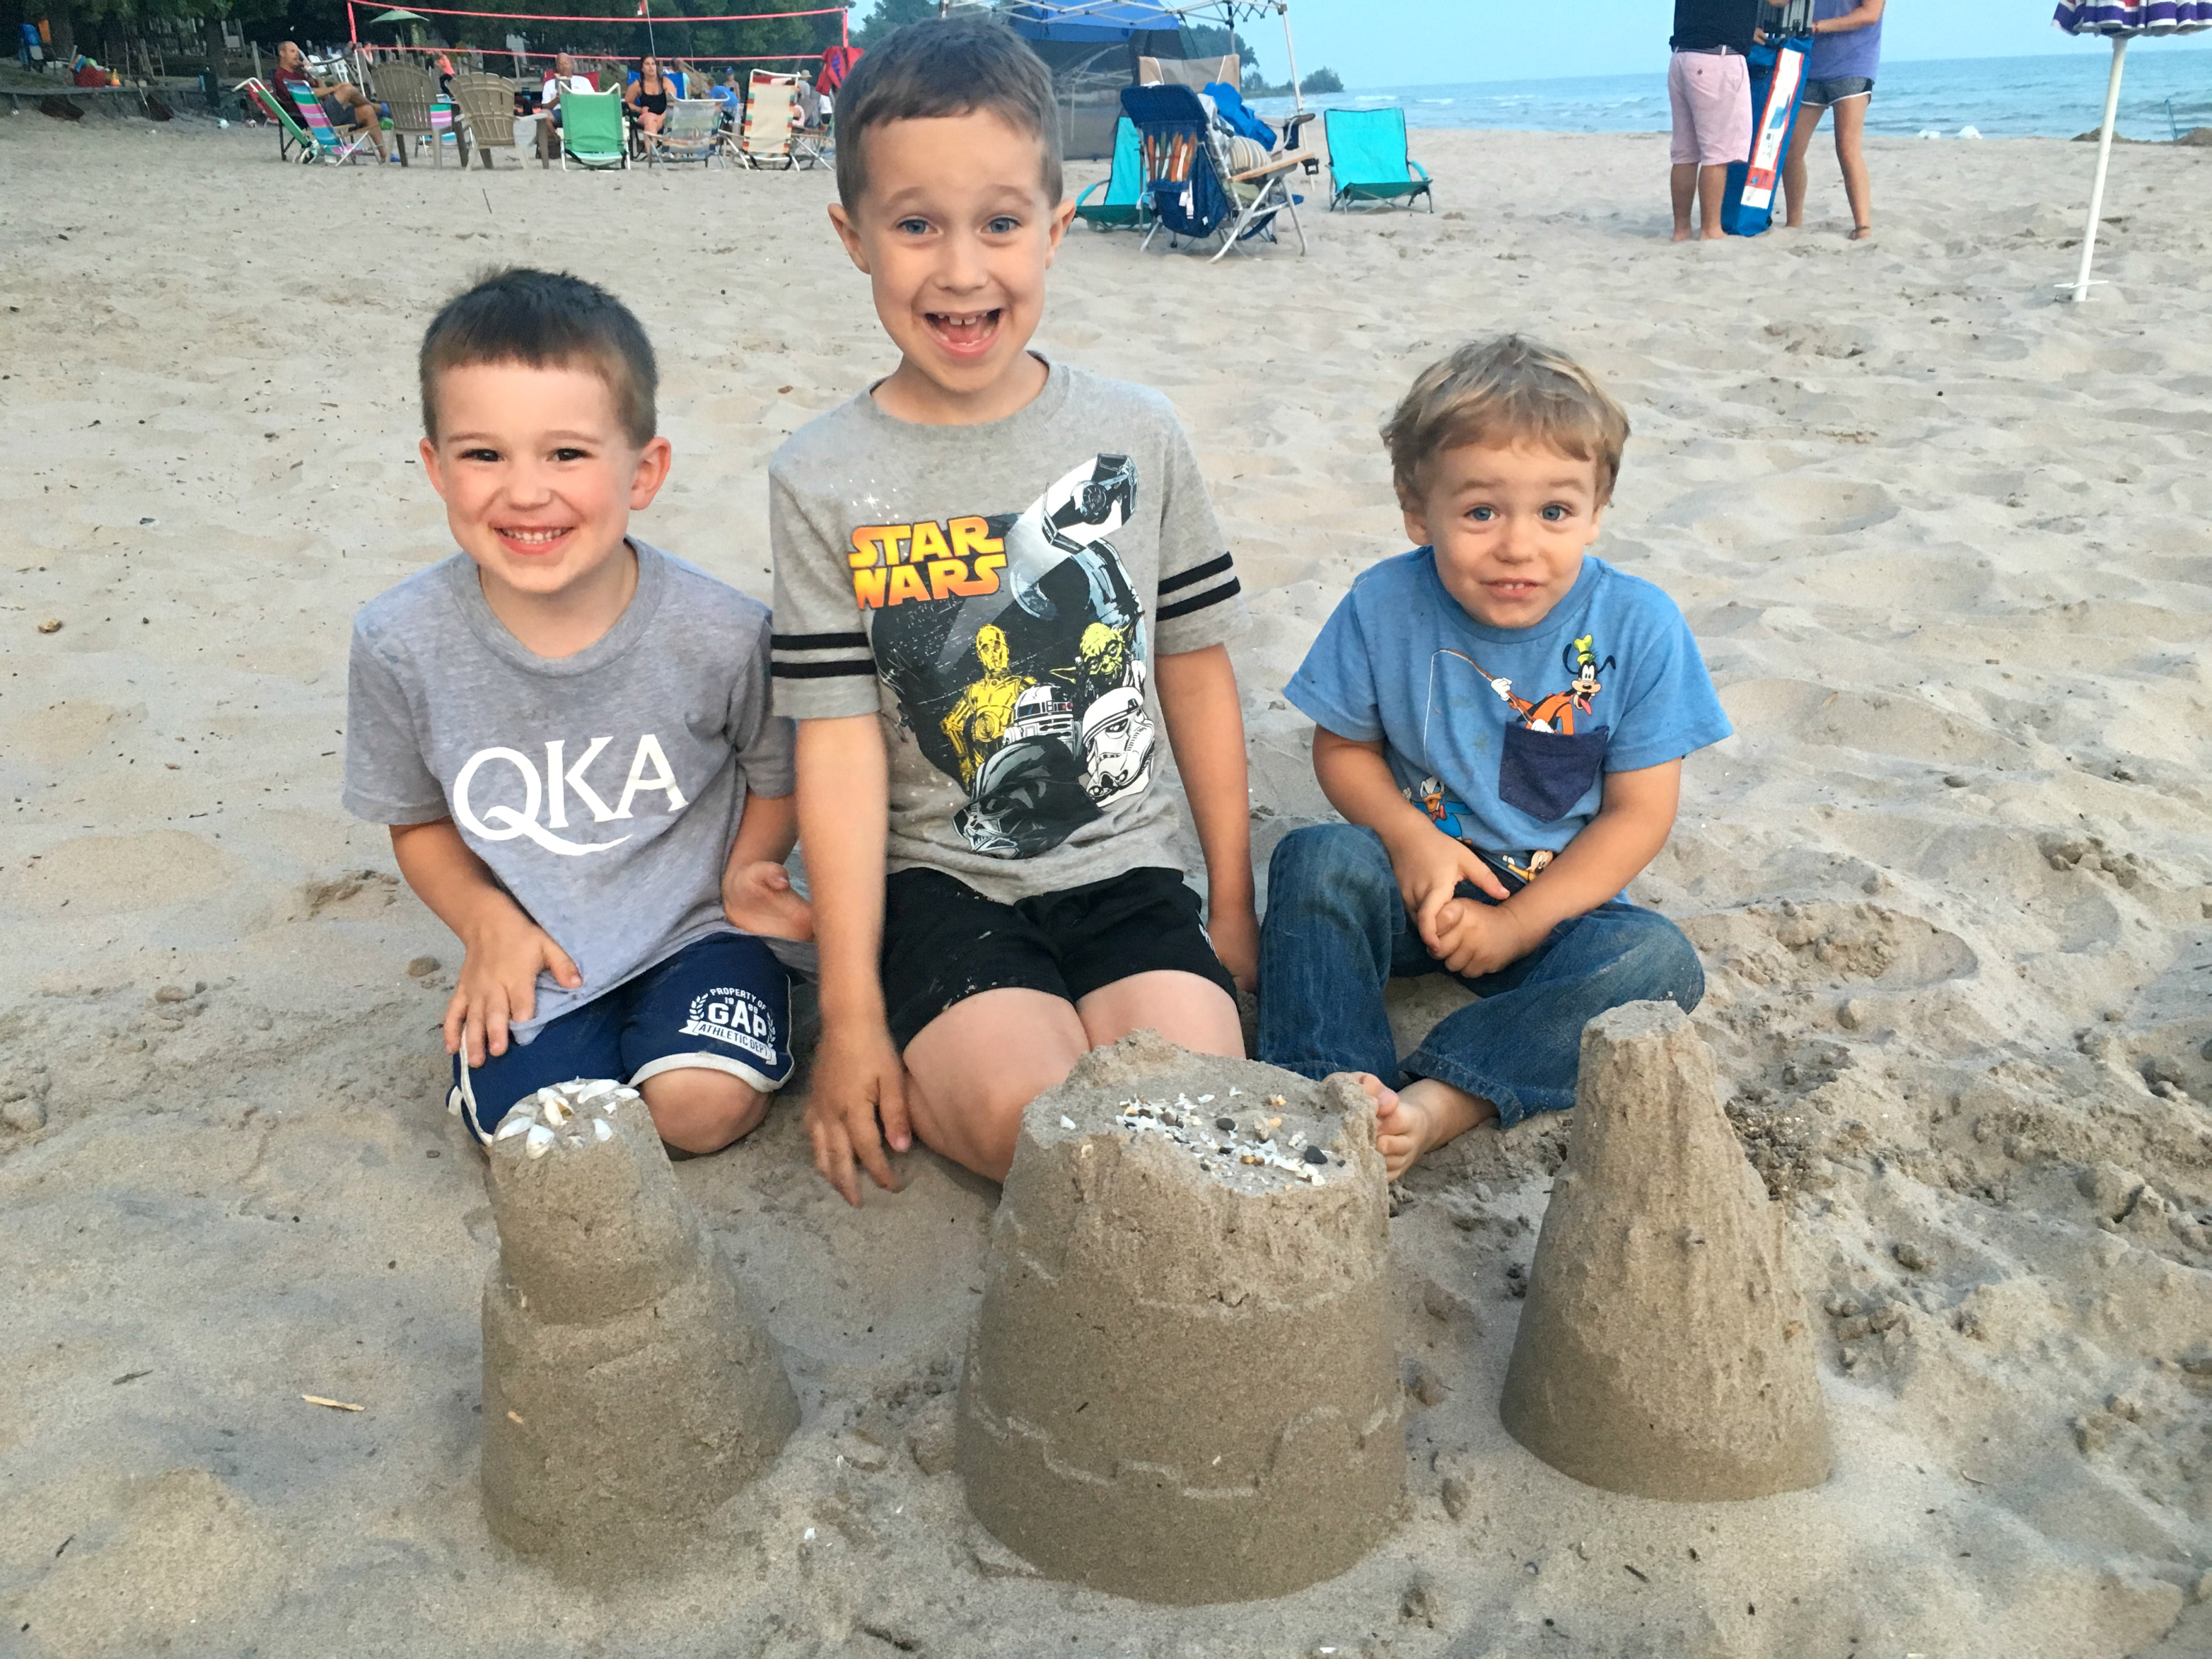 Boys and their sandcastle